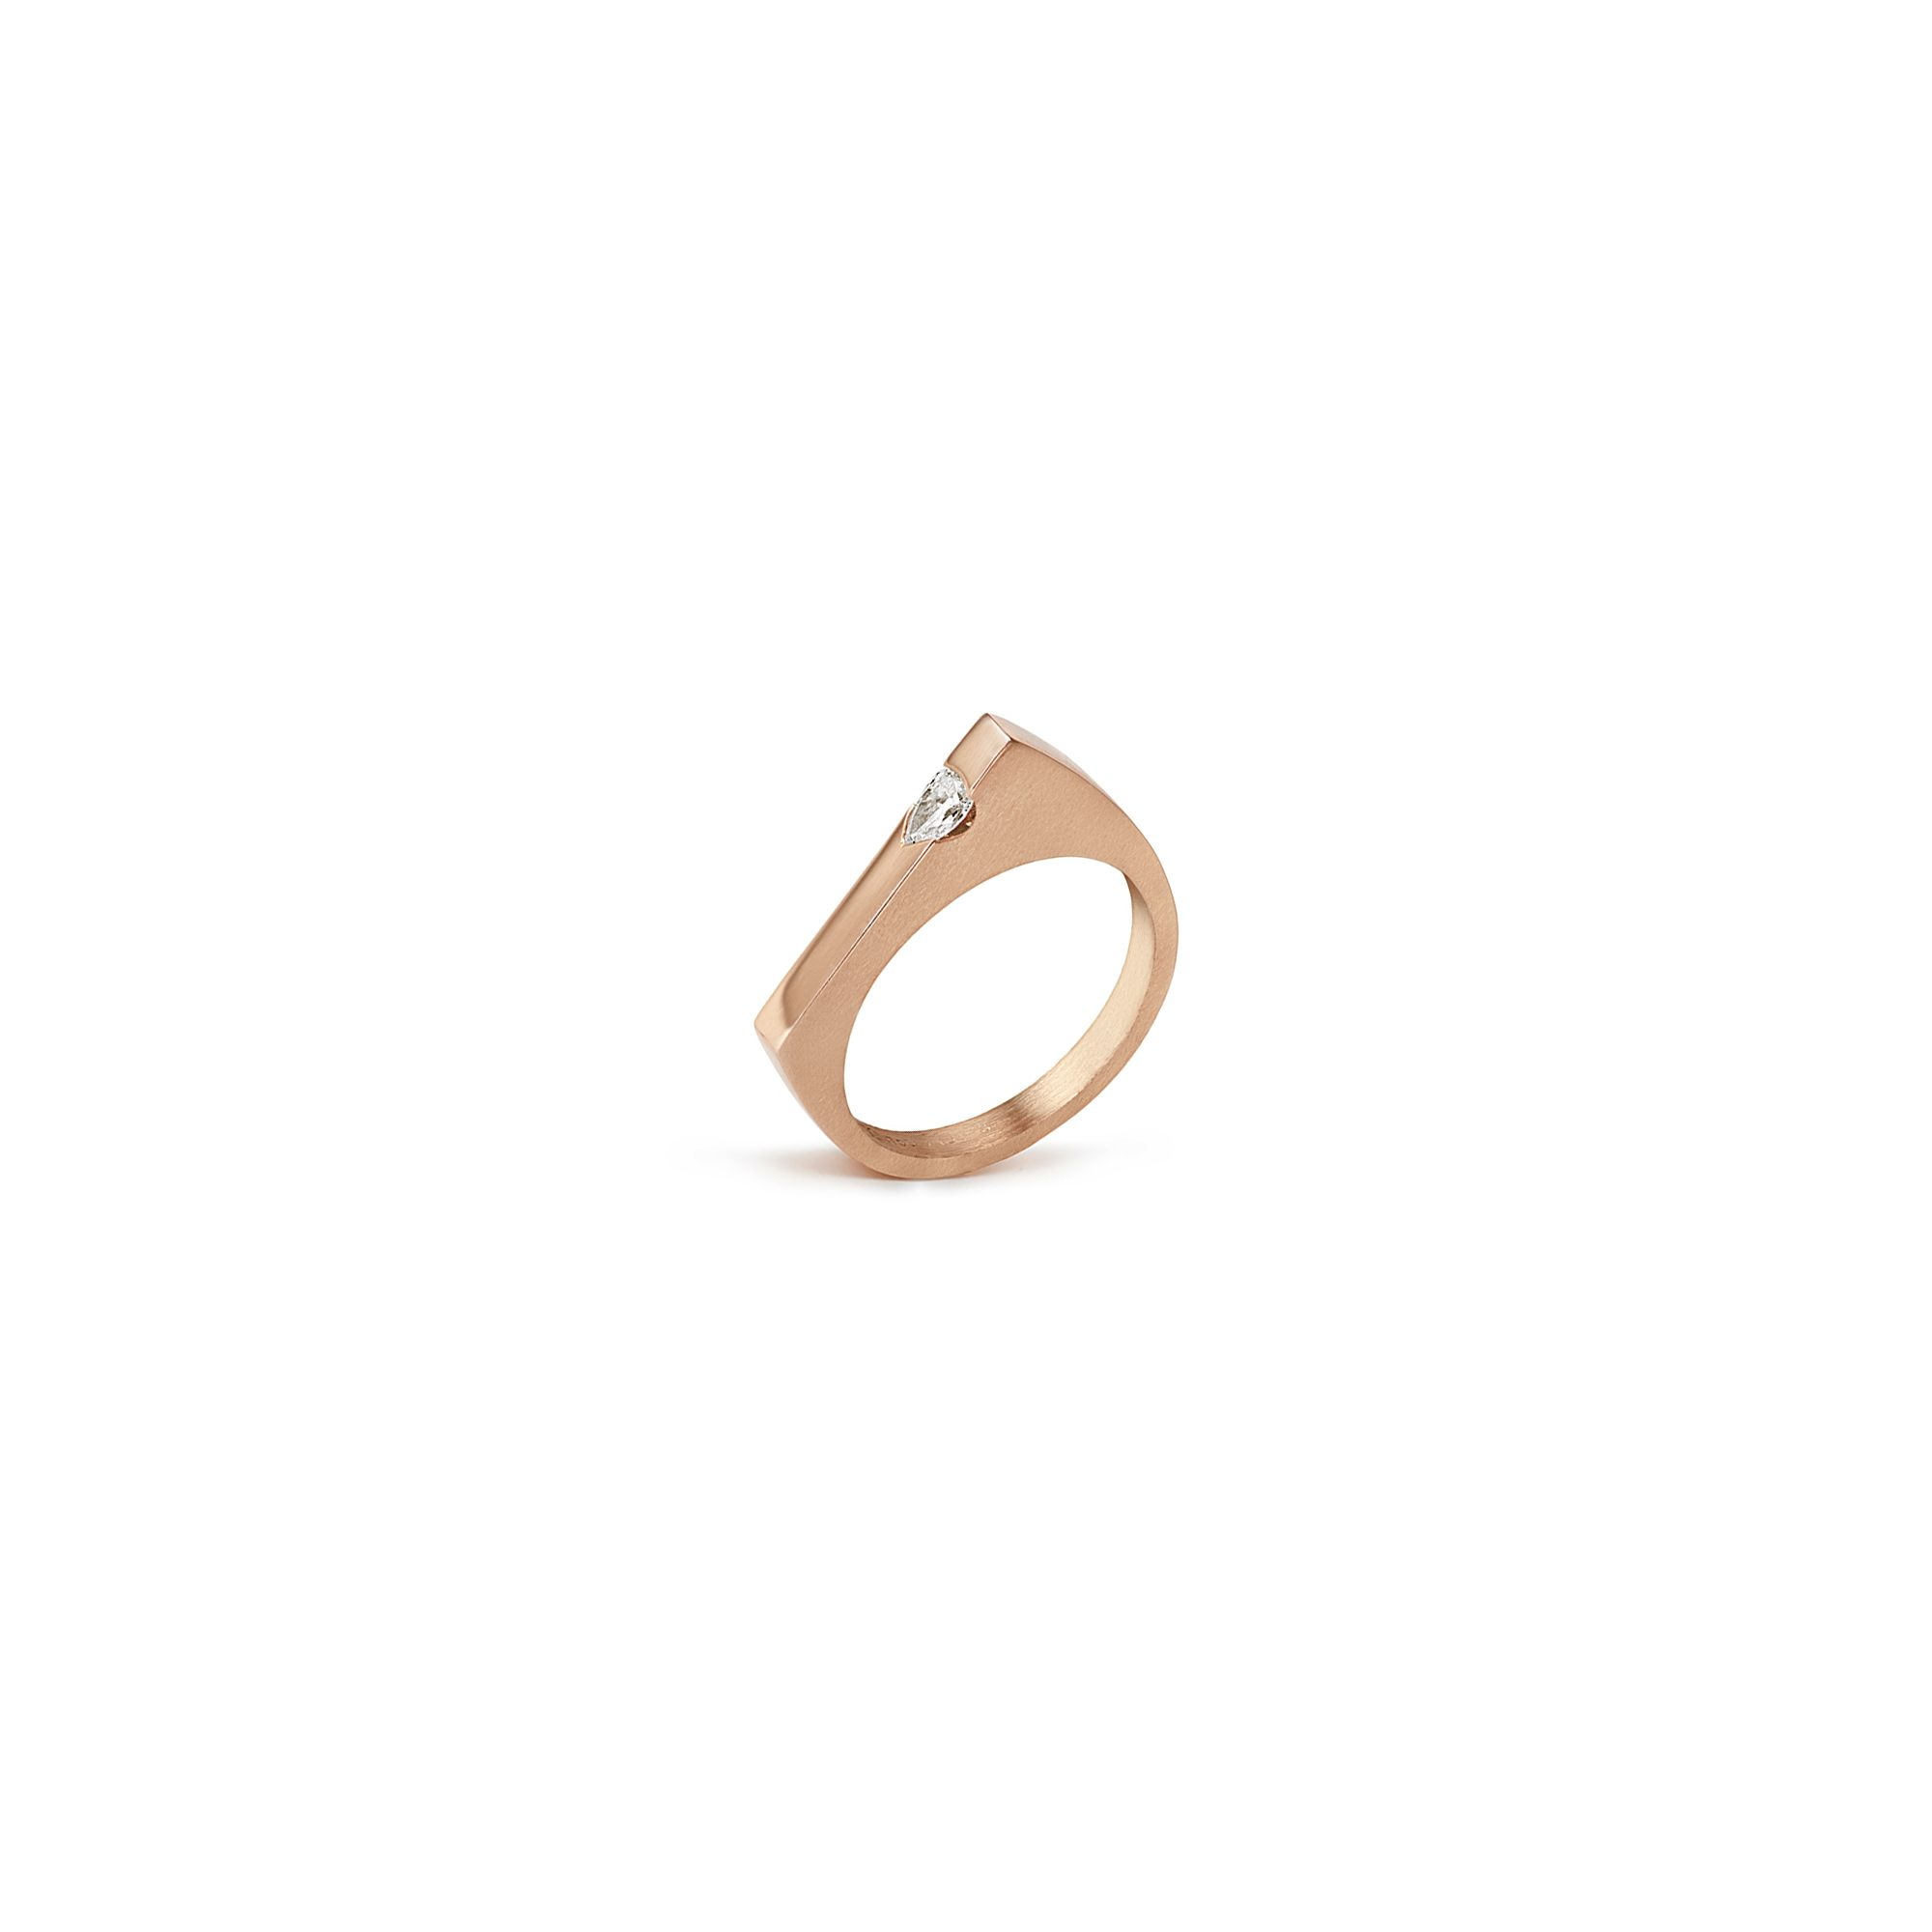 Modular 'Congiunzioni' point ring with marquise Rose gold ring with diamond